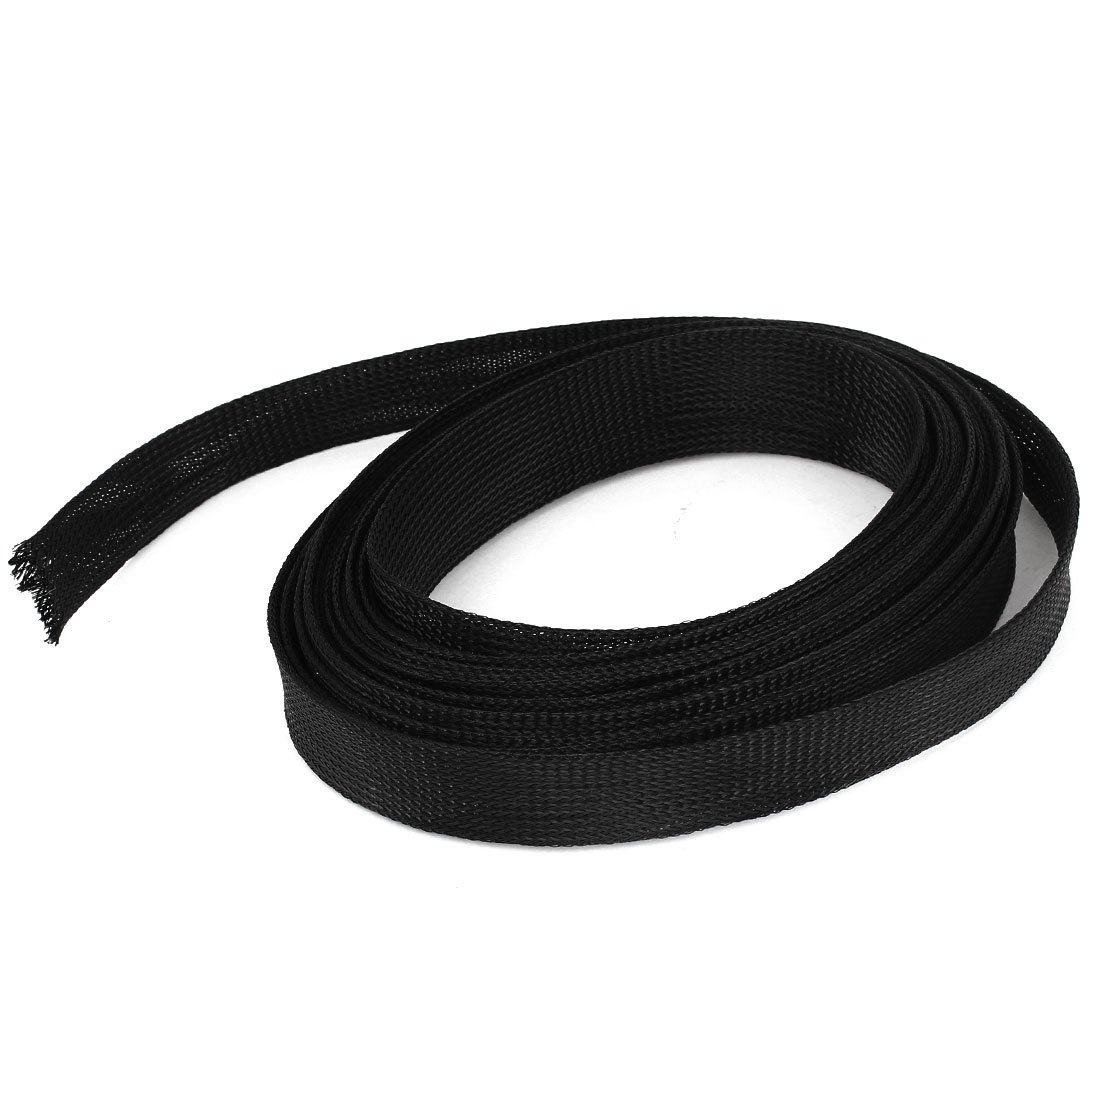 Amazon.com: uxcell 25mmx8m Mesh Rigging Conduit Expandable Braided Sleeving  Cable Harness: Automotive